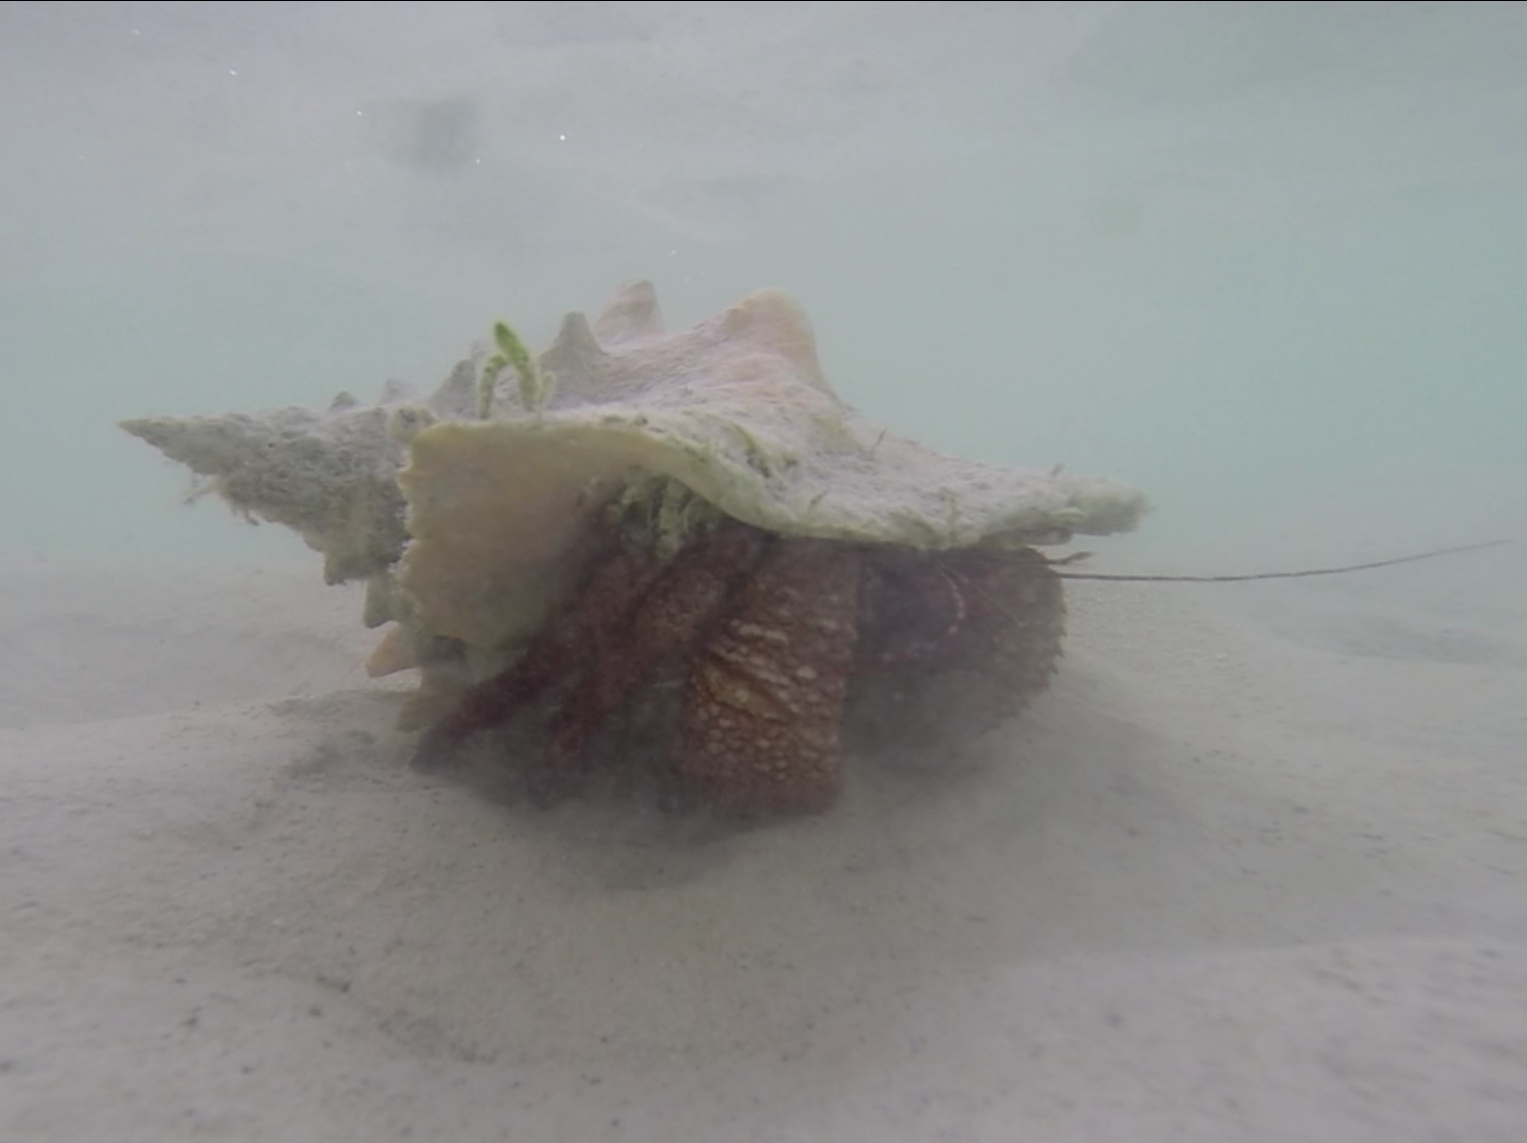 No luck diving for conch.... just a massive hermit crab